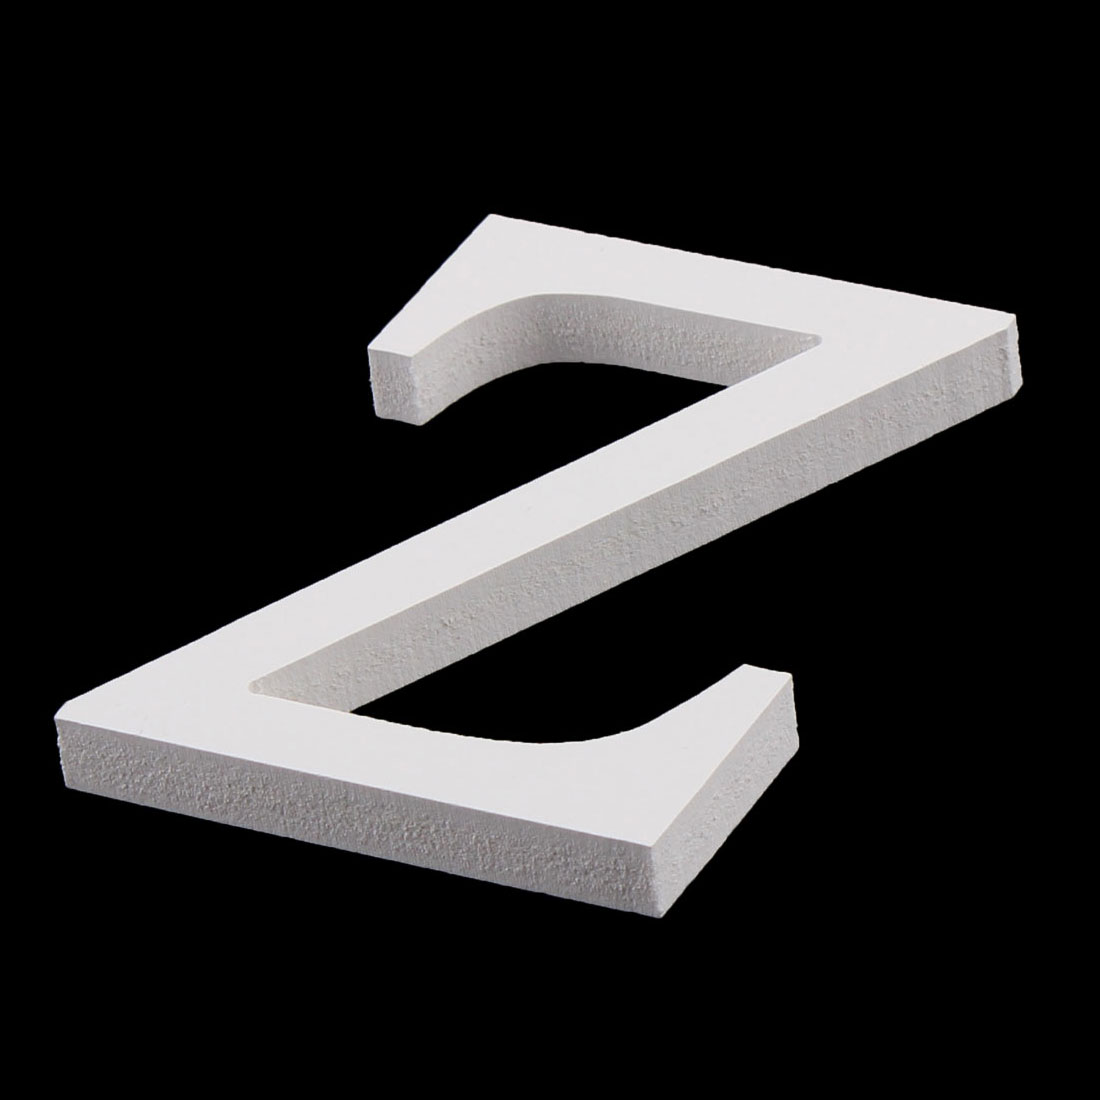 Wedding Party Home Plywood Decoration English Z Letter Alphabet DIY Wall White - image 1 of 3